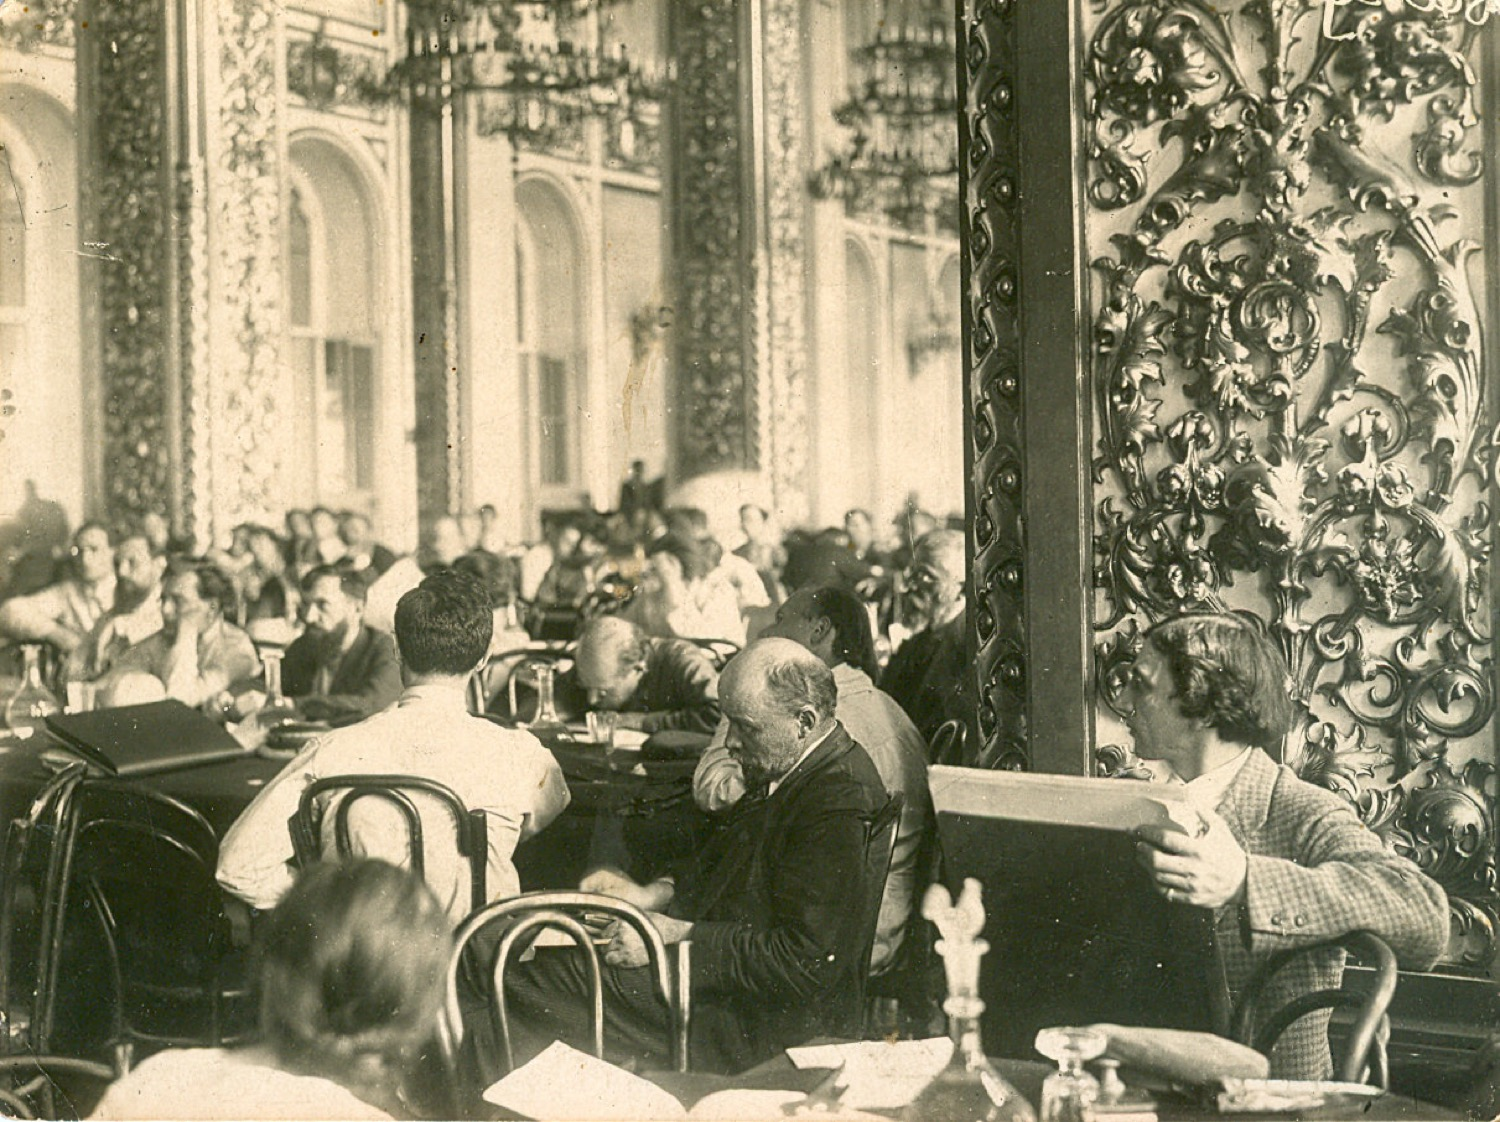 Photo. V. I. Lenin at the session of the Second Congress of Comintern in the St. Andrew's hall of the Kremlin. RSFSR, Moscow. July 23 – August 6, 1920. Photographer V. K. Bulla